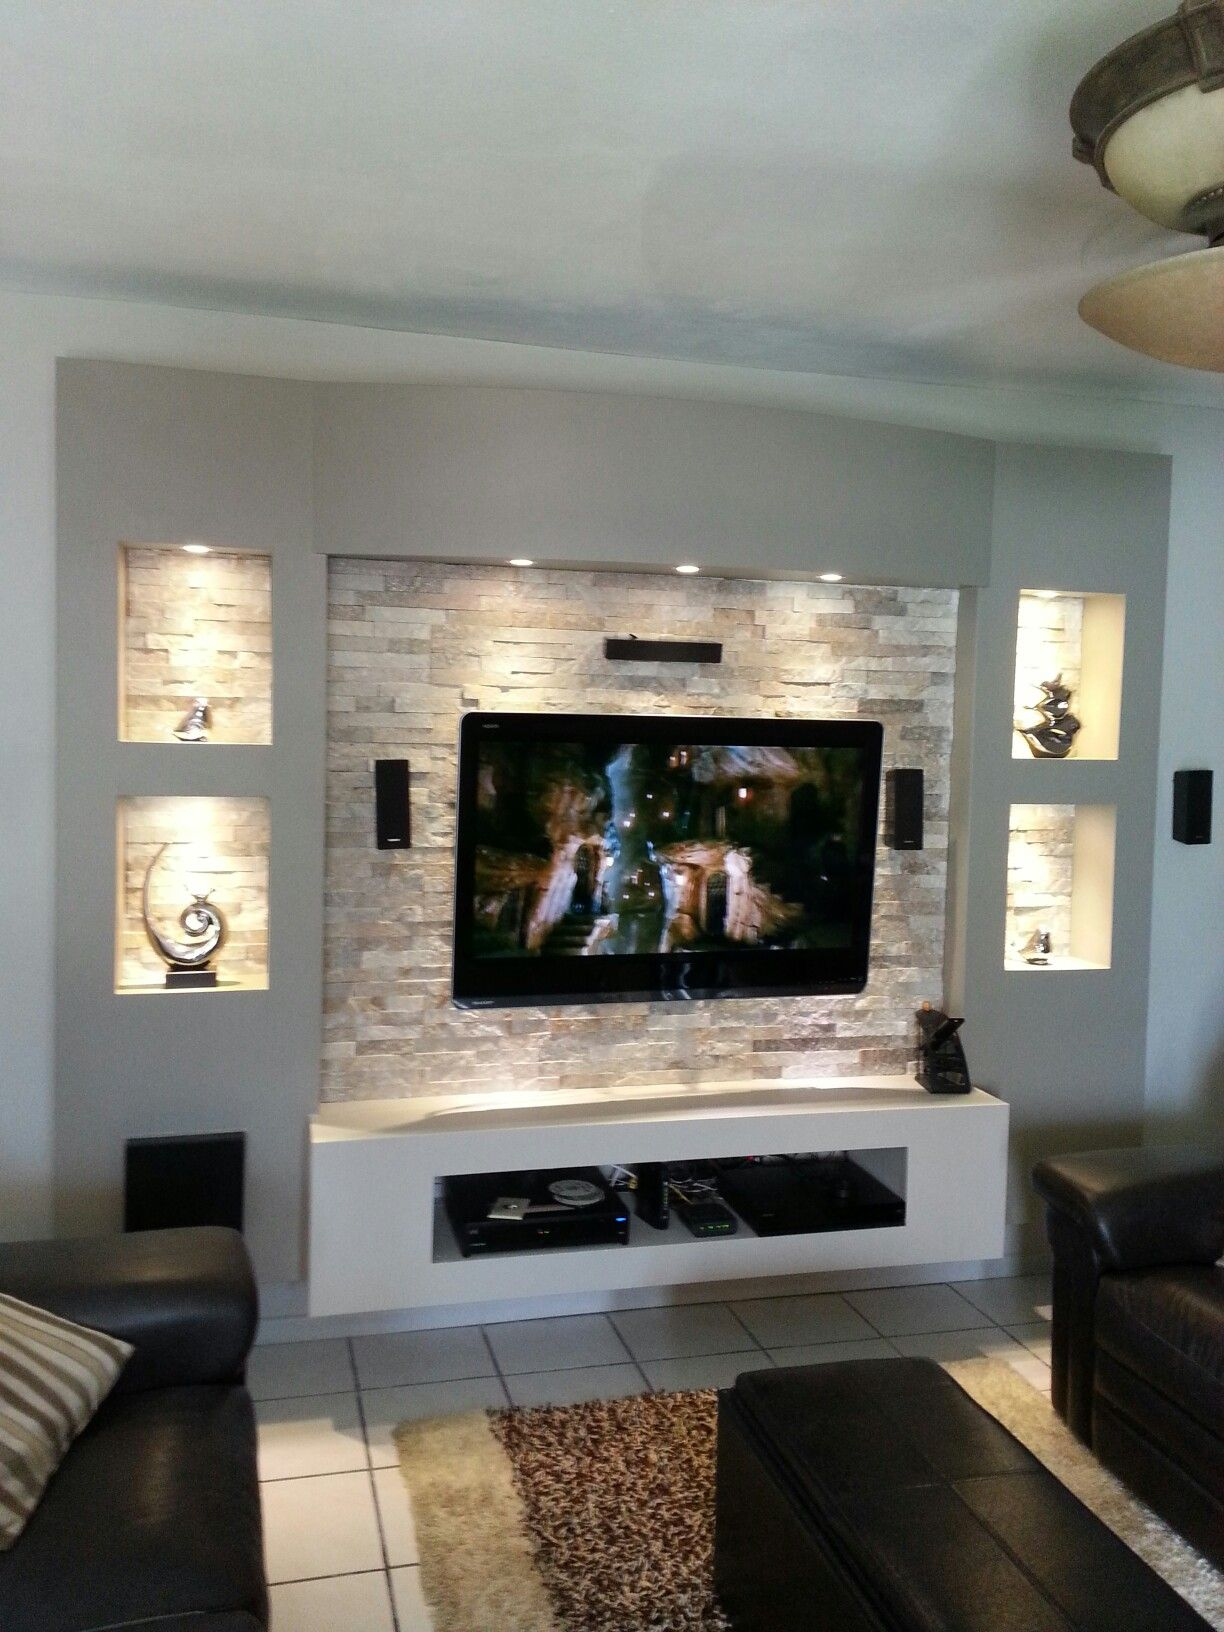 Innovación TV Unit | My own projects | Pinterest | Tv units, TVs and ...